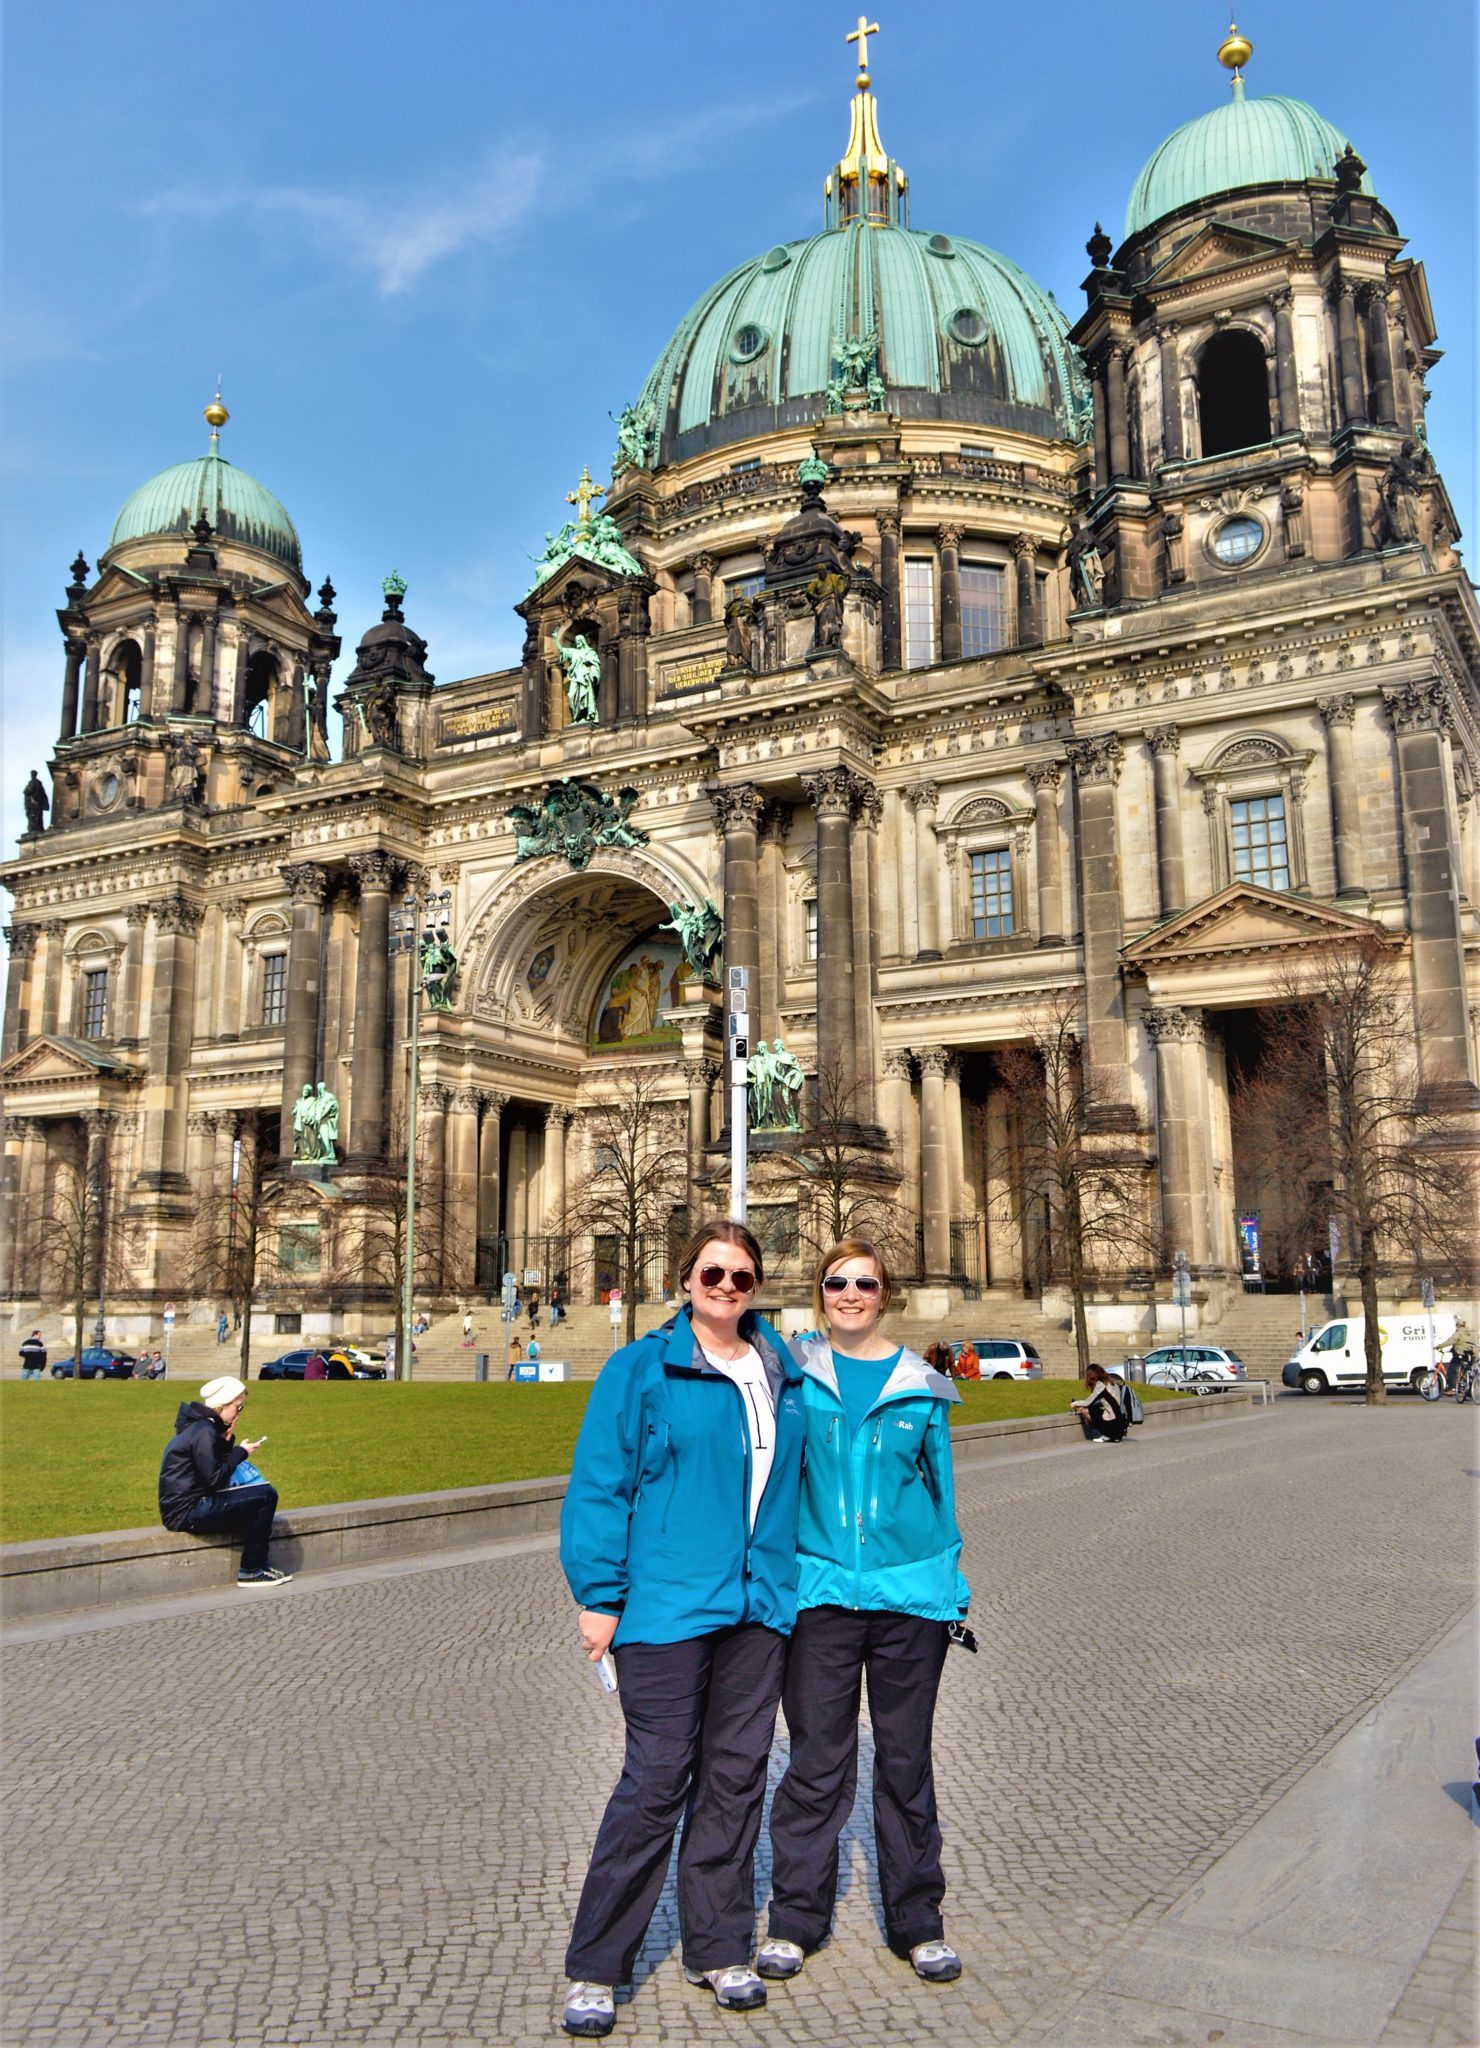 Arcteryx jacket, Berlin Cathedral, Germany